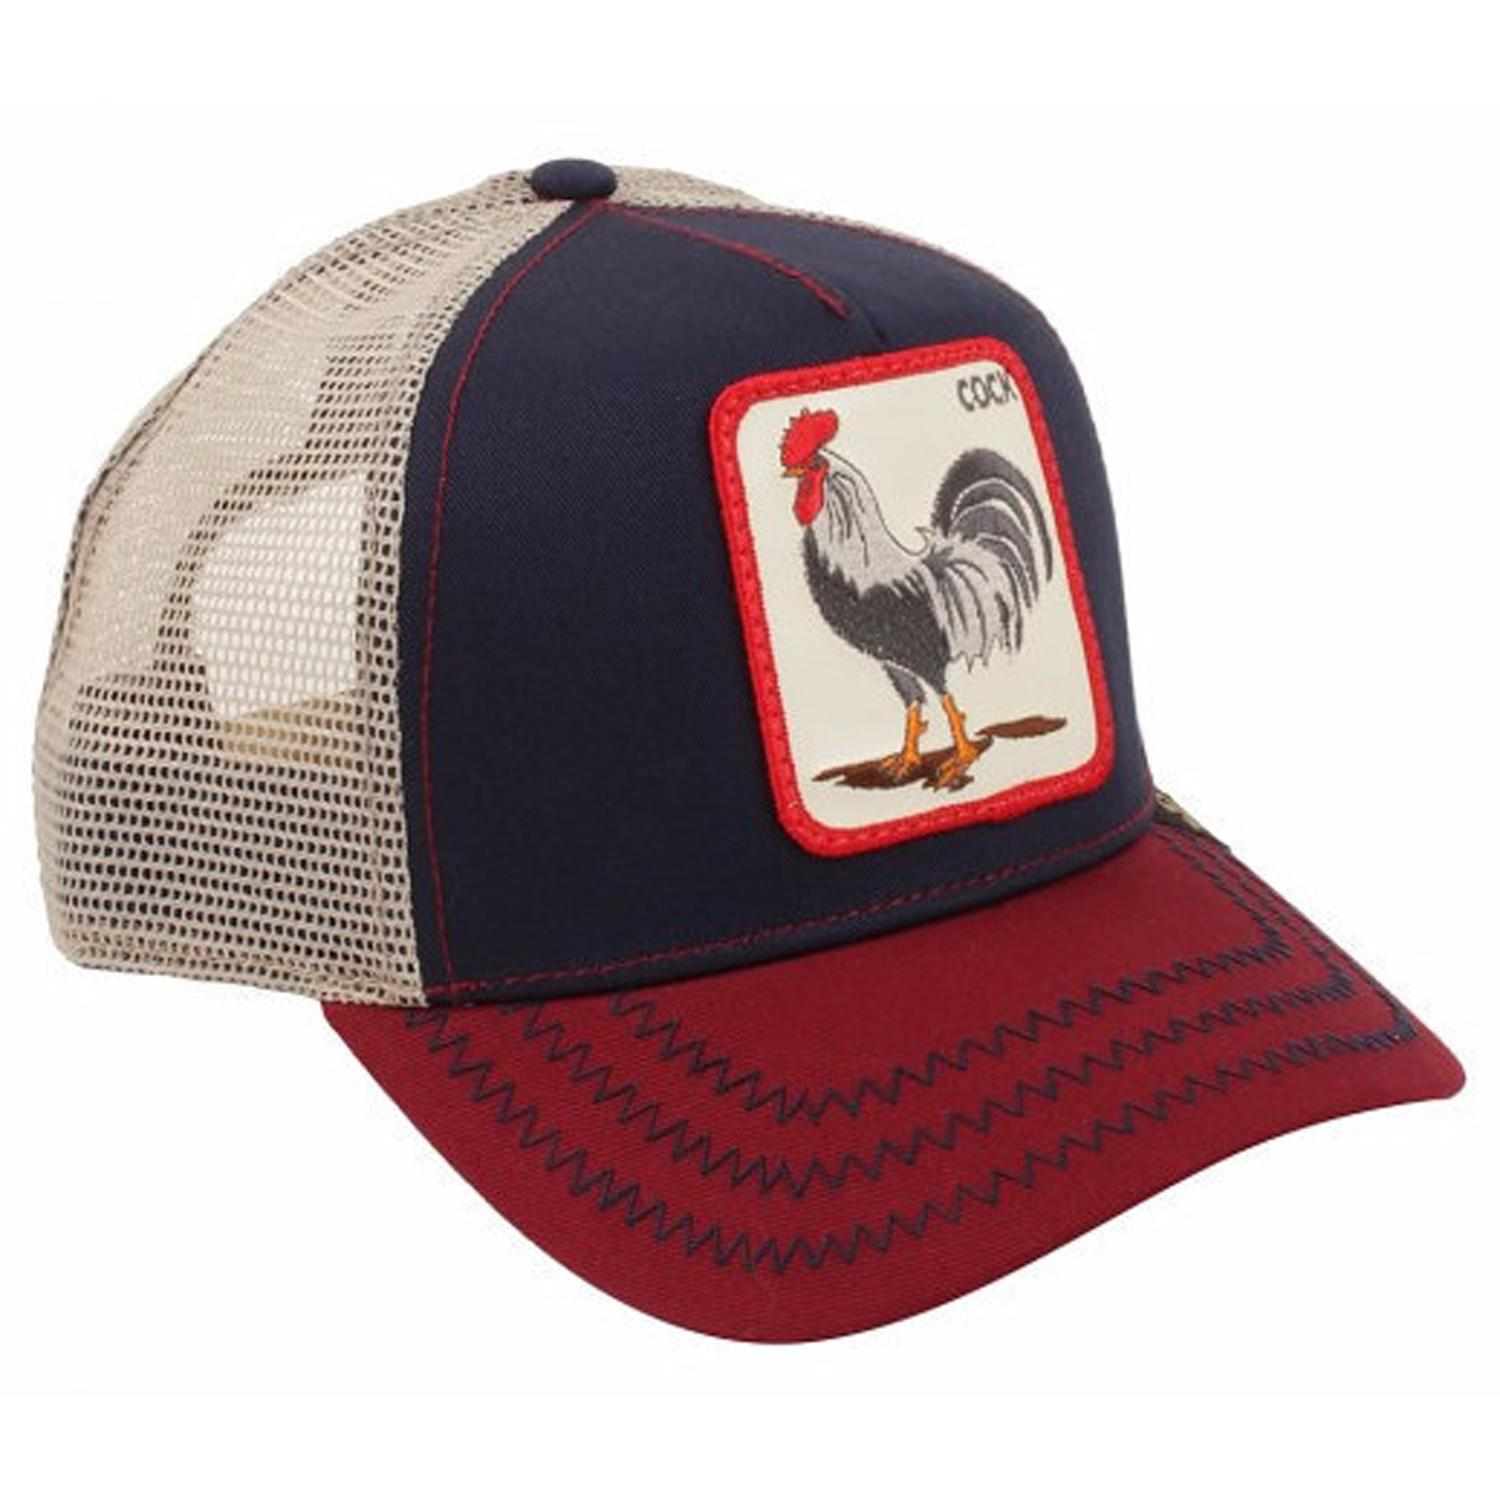 Lyst - Goorin Bros All American Rooster Cap for Men 76463f35f2e